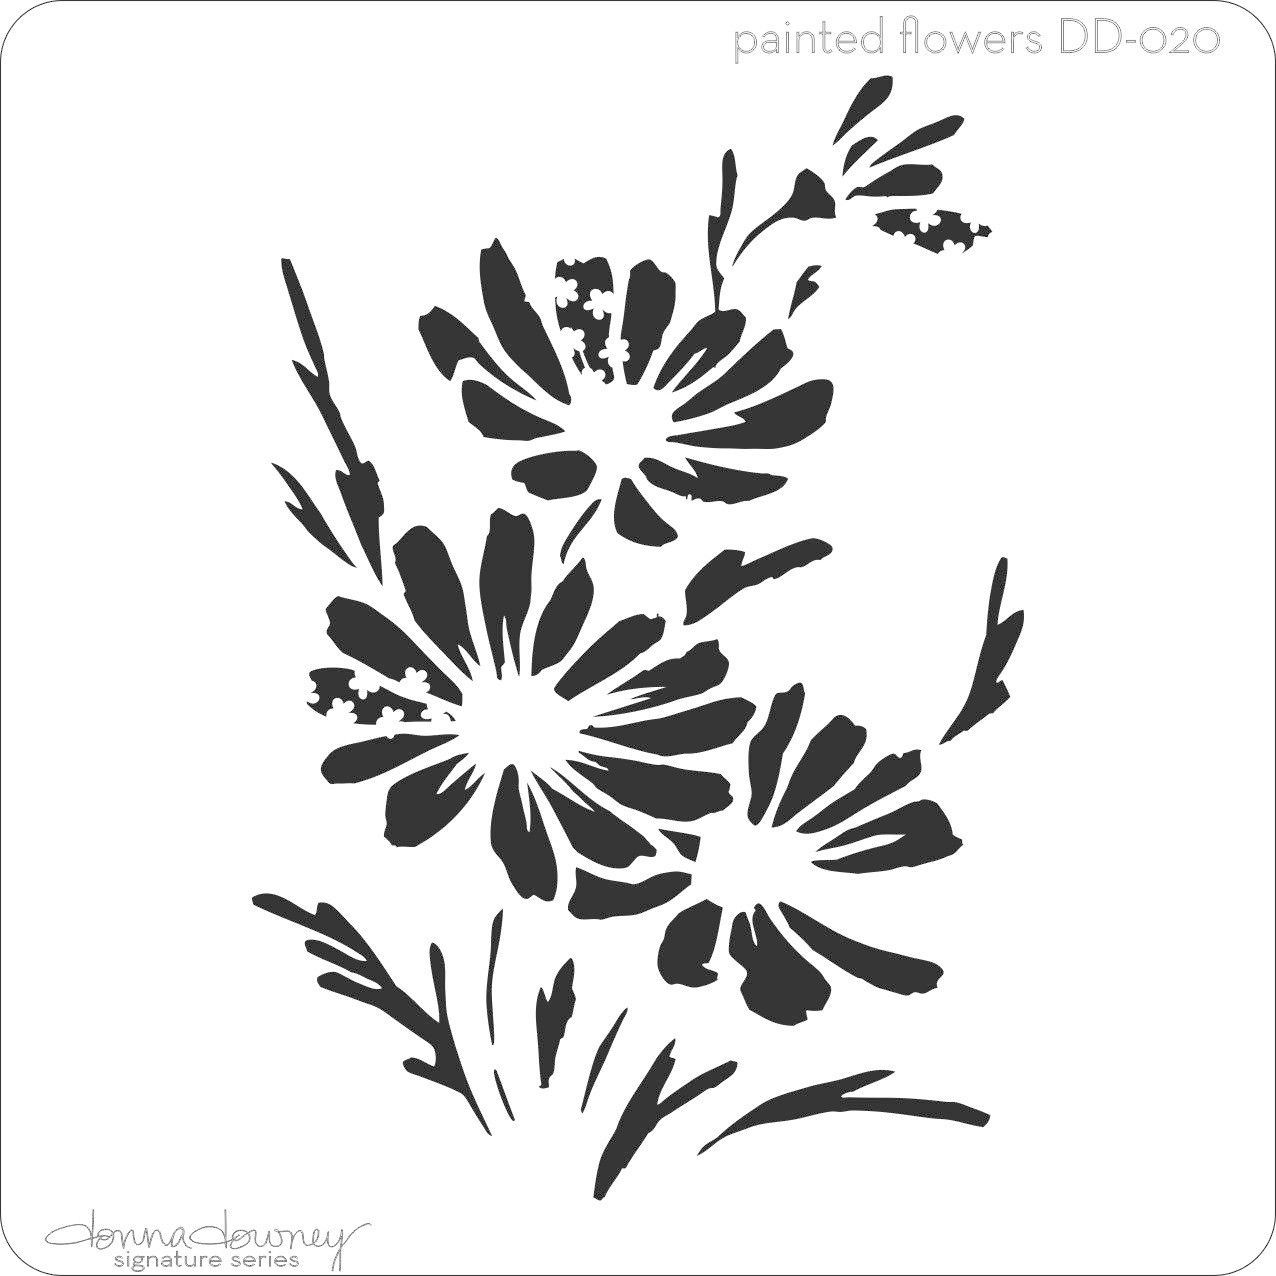 poppy flower stencil - Google Search